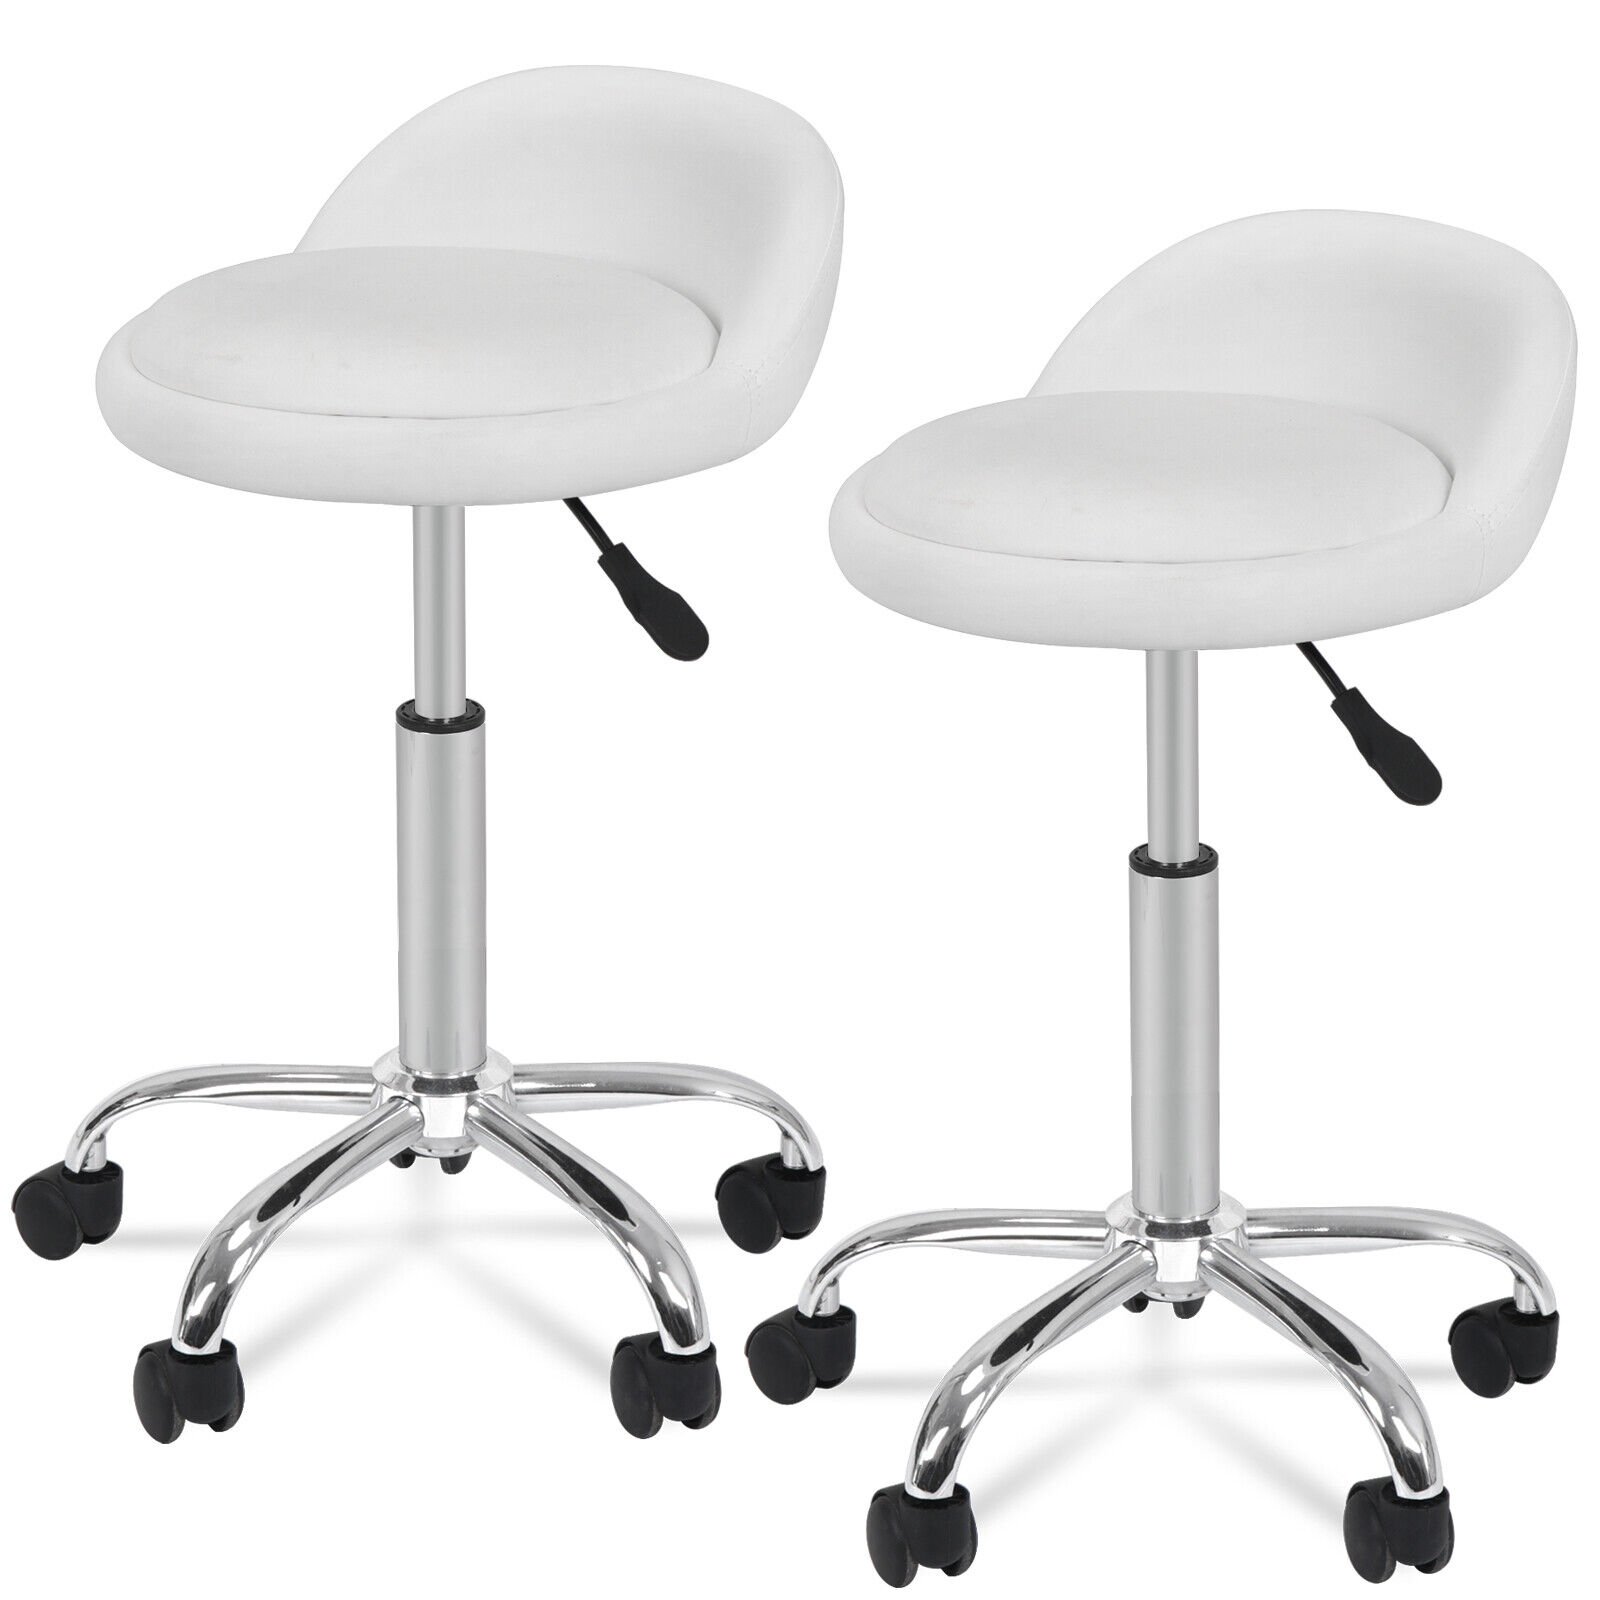 Salon Stool with Back Rest Set of 2 Saddle Rolling Hydraulic Spa Stools White Health & Beauty